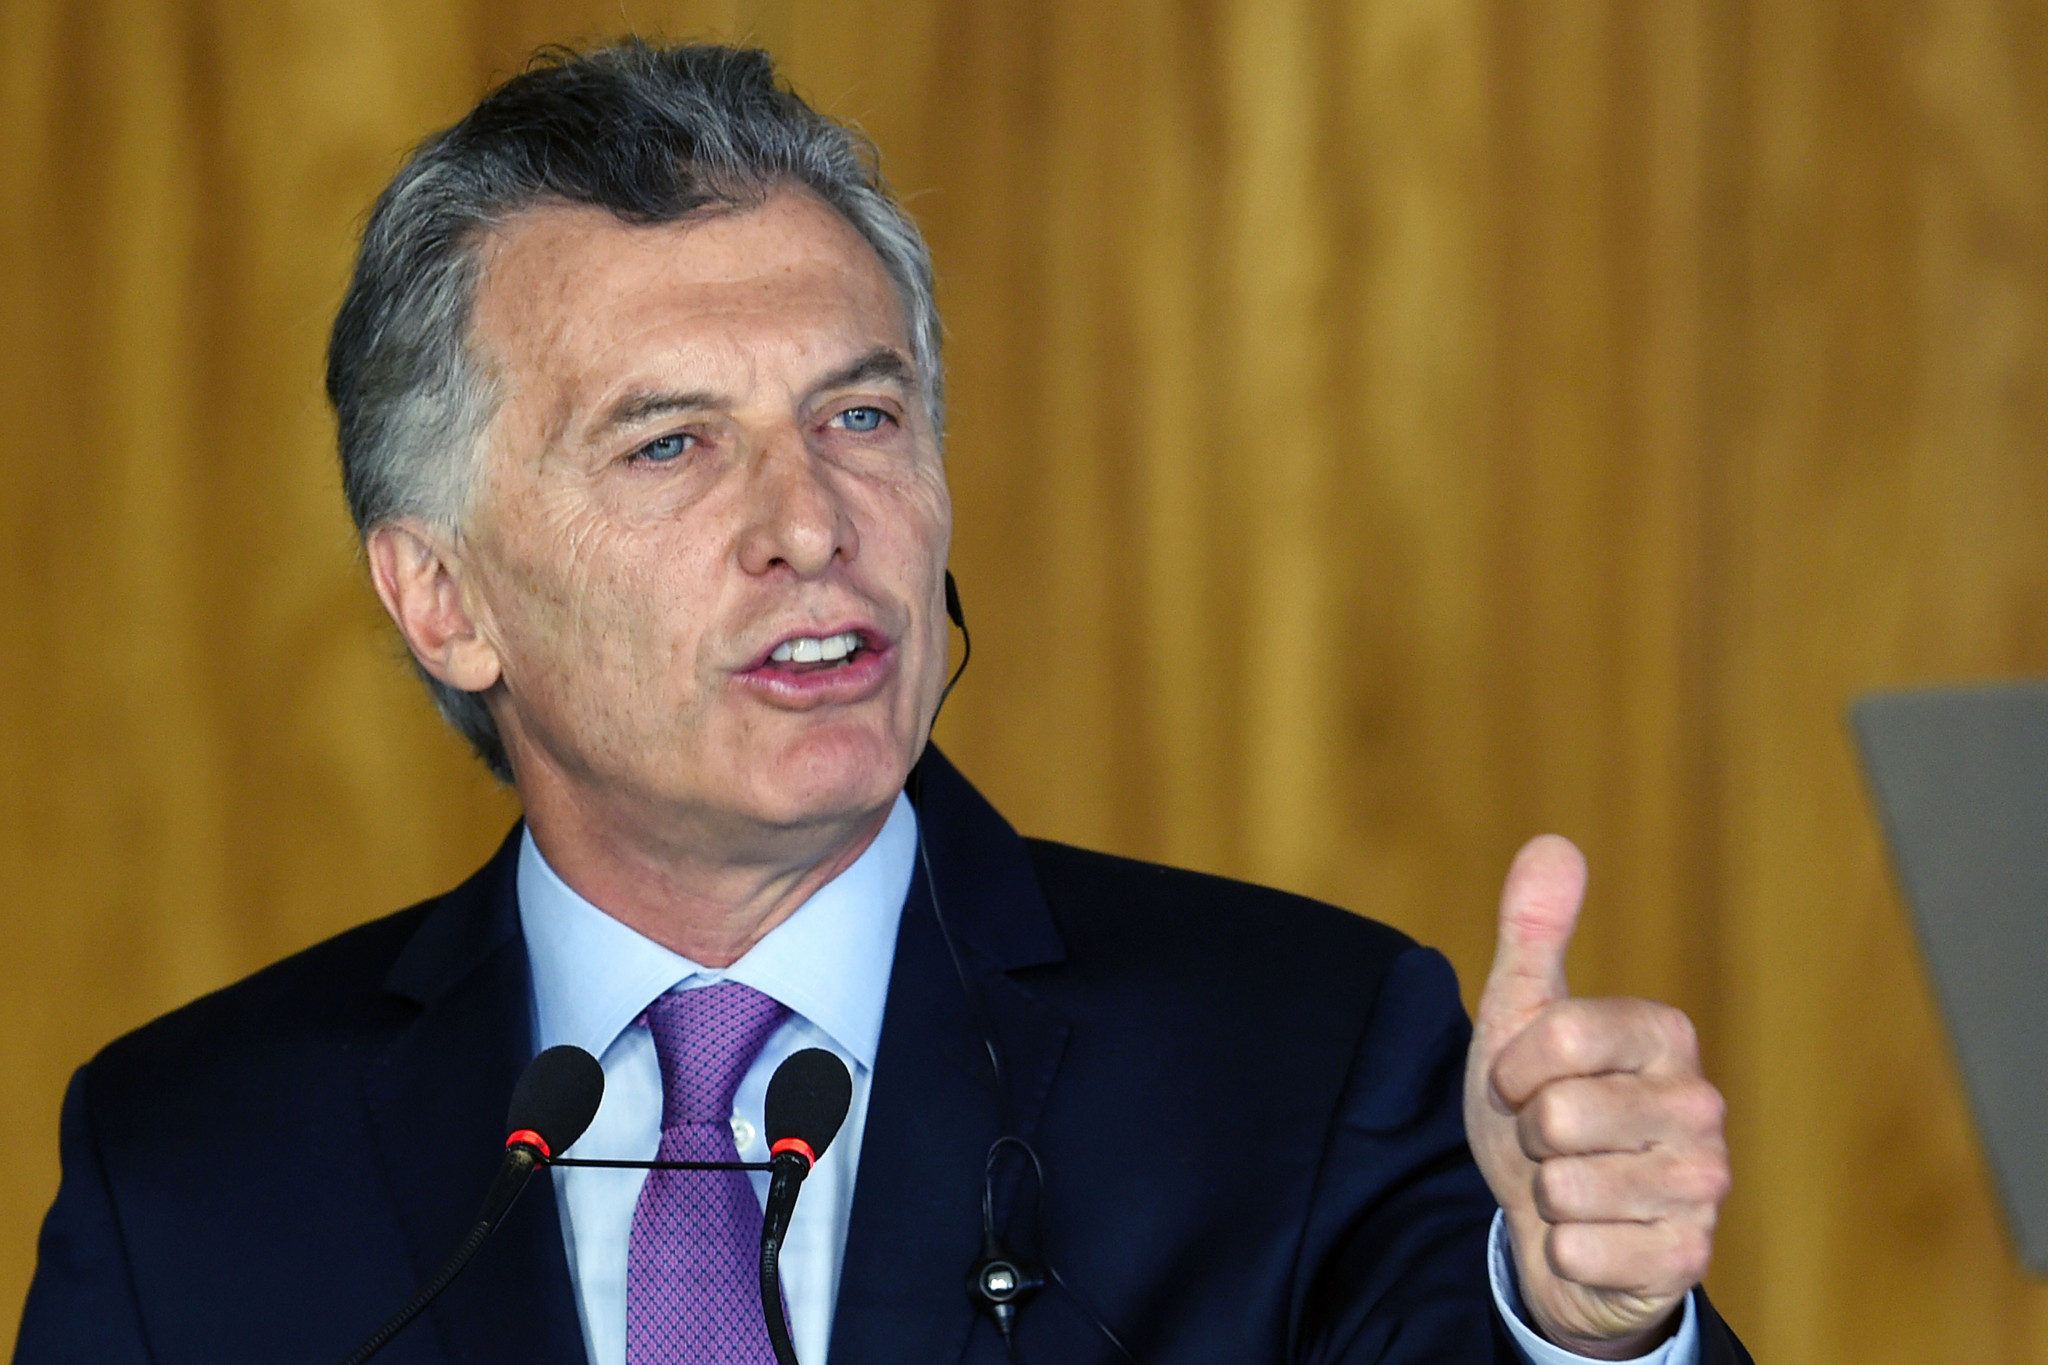 Mauricio Macri has extensive experience in sport and politics ©Getty Images